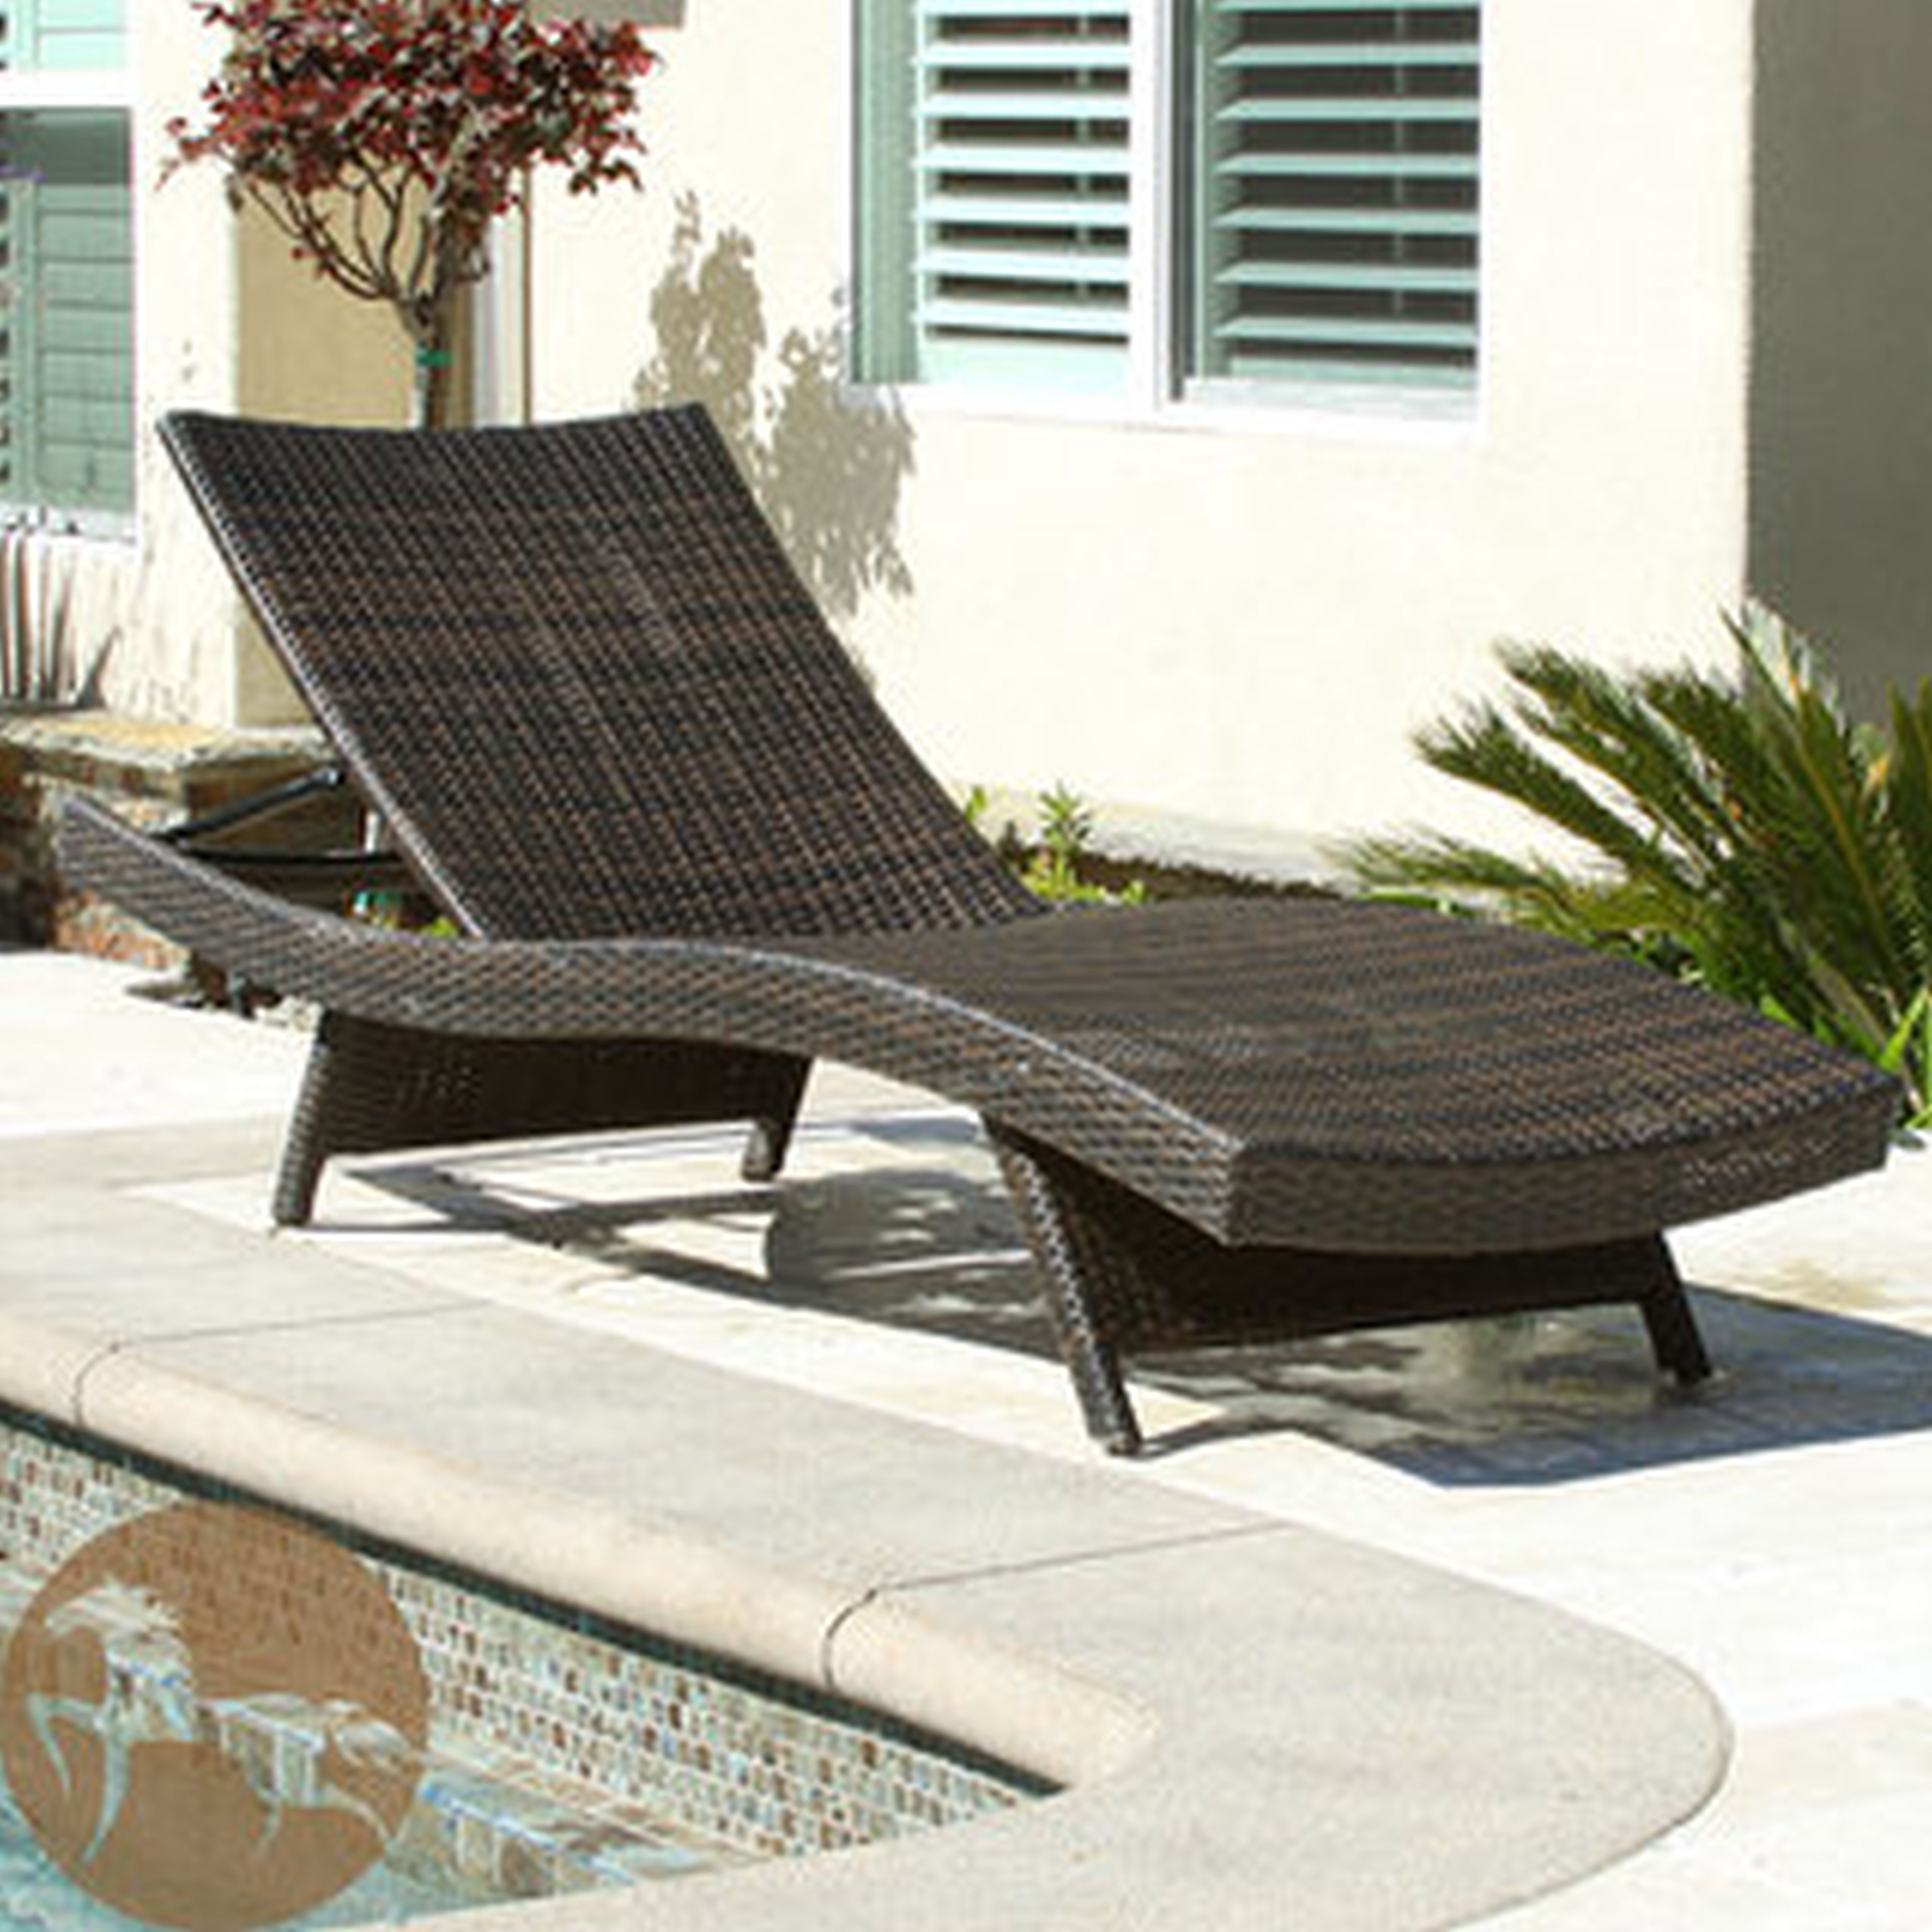 Outdoor Lounge Chaises Regarding Recent Outdoor : Chaise Lounge Sofa Lowes Patio Furniture Clearance (View 8 of 15)